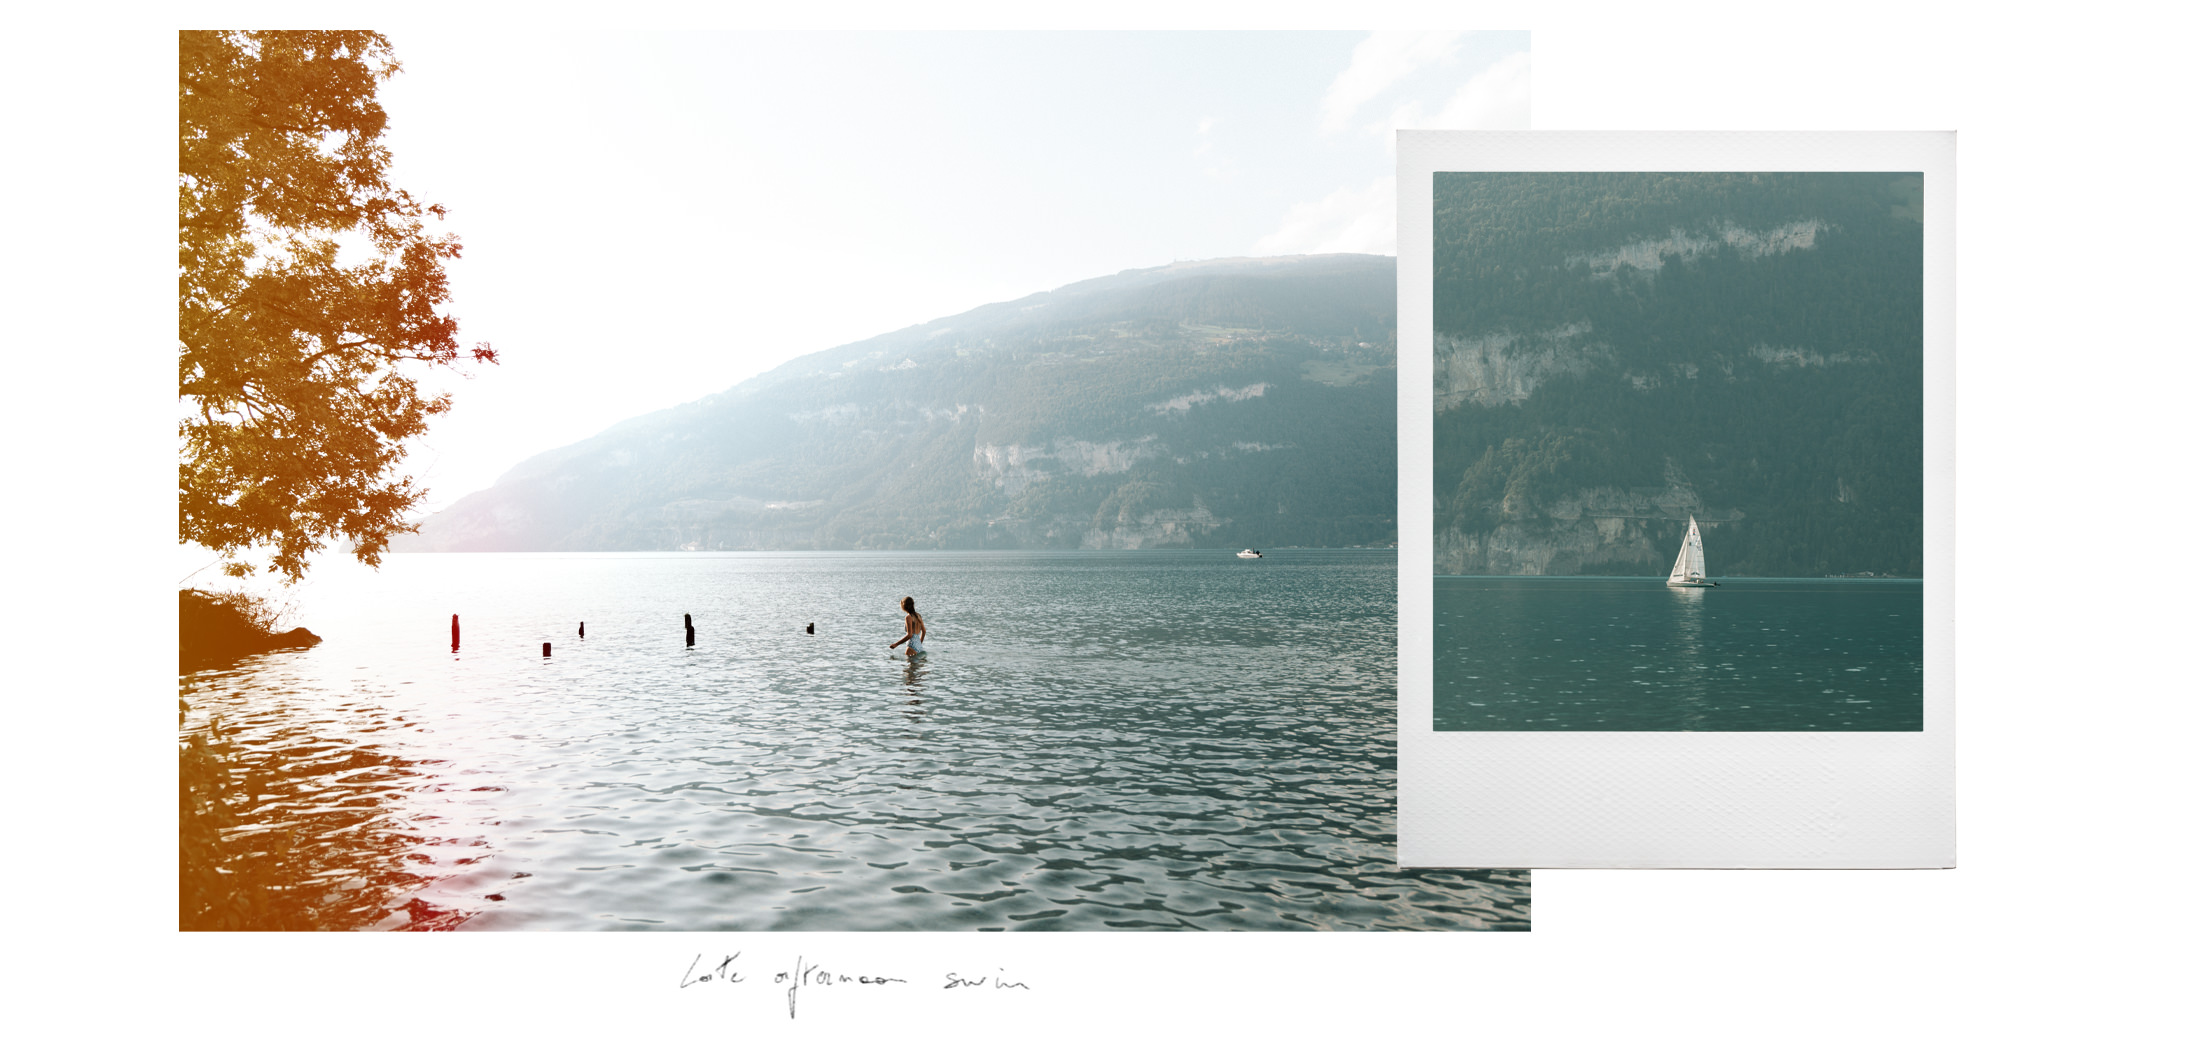 Swimming in the Thun lake